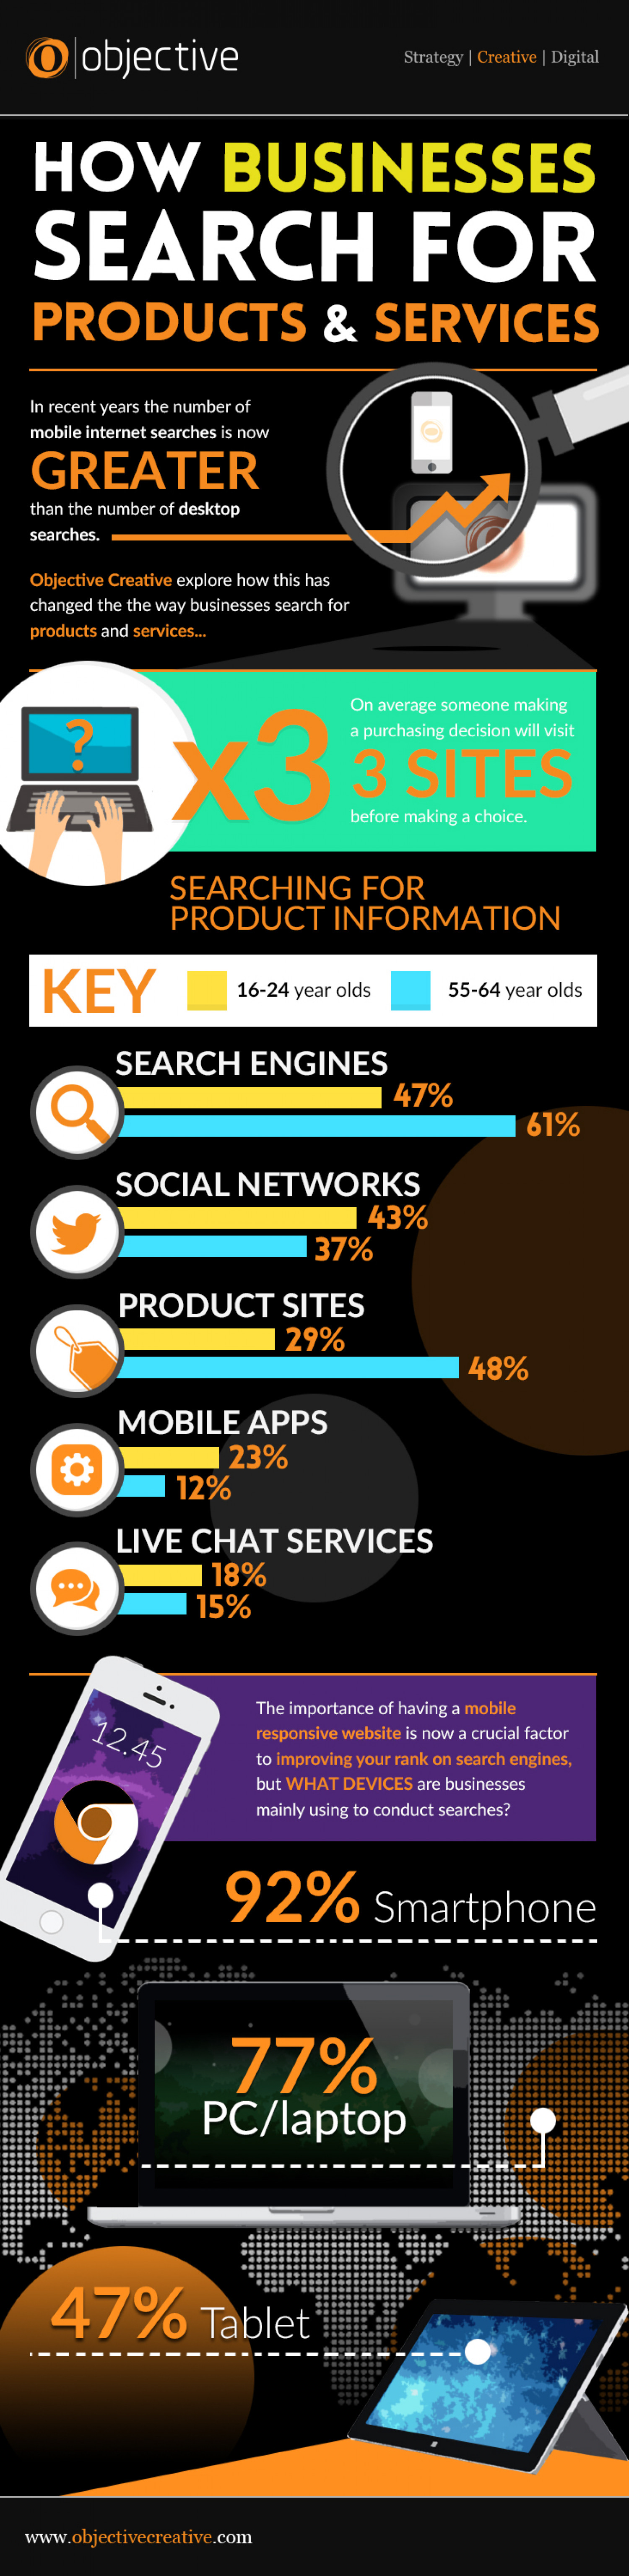 How Businesses Search For Products & Services  Infographic